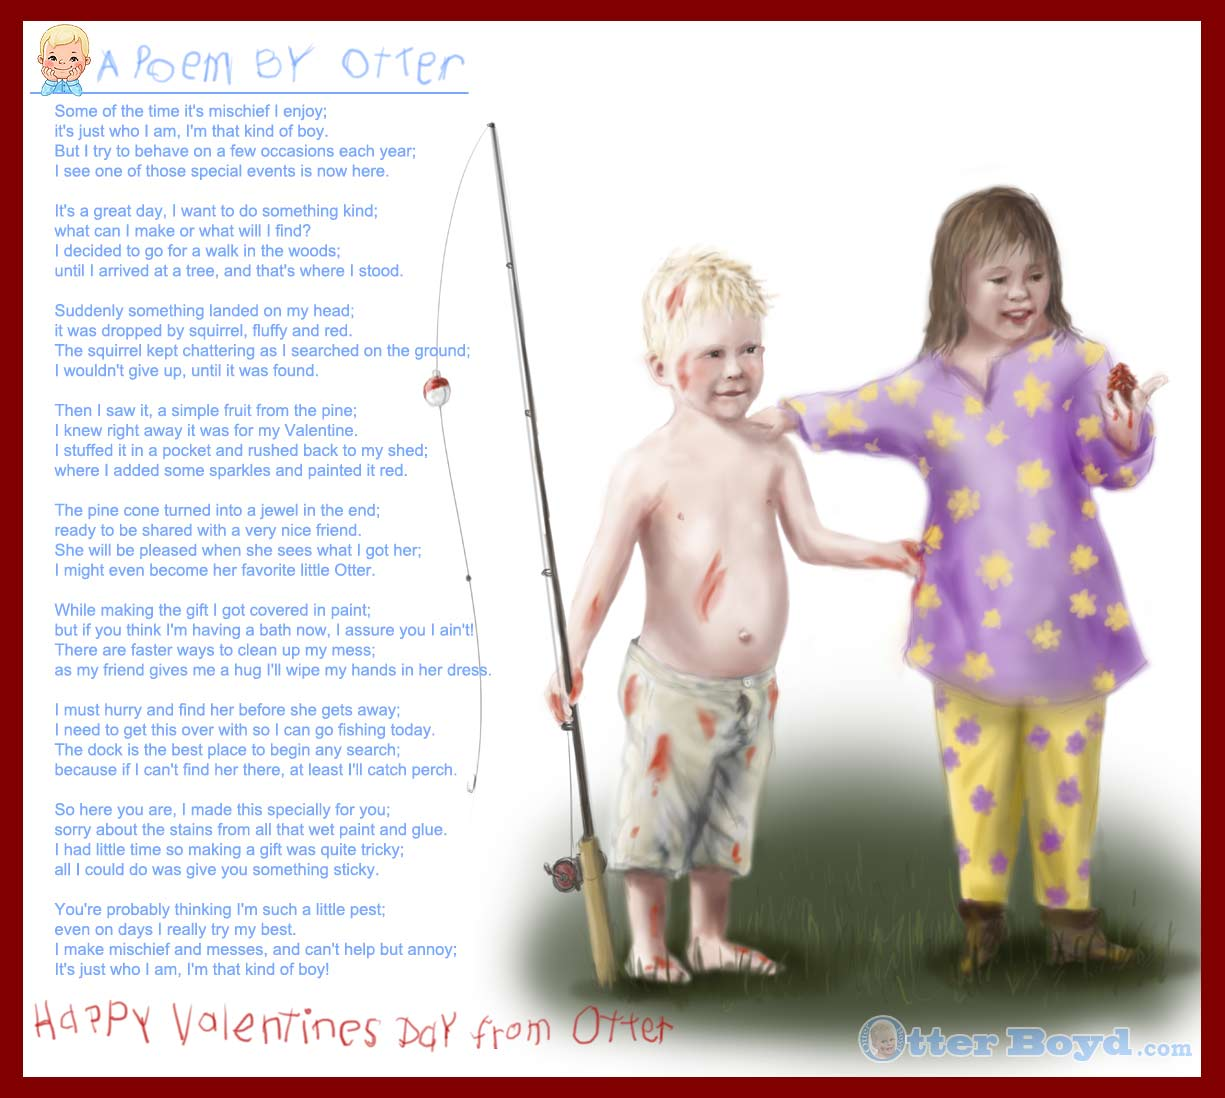 Valentines Day Poem By Otter with Painting of a Boy Holding a Fishing Rod and Girl with a Gift